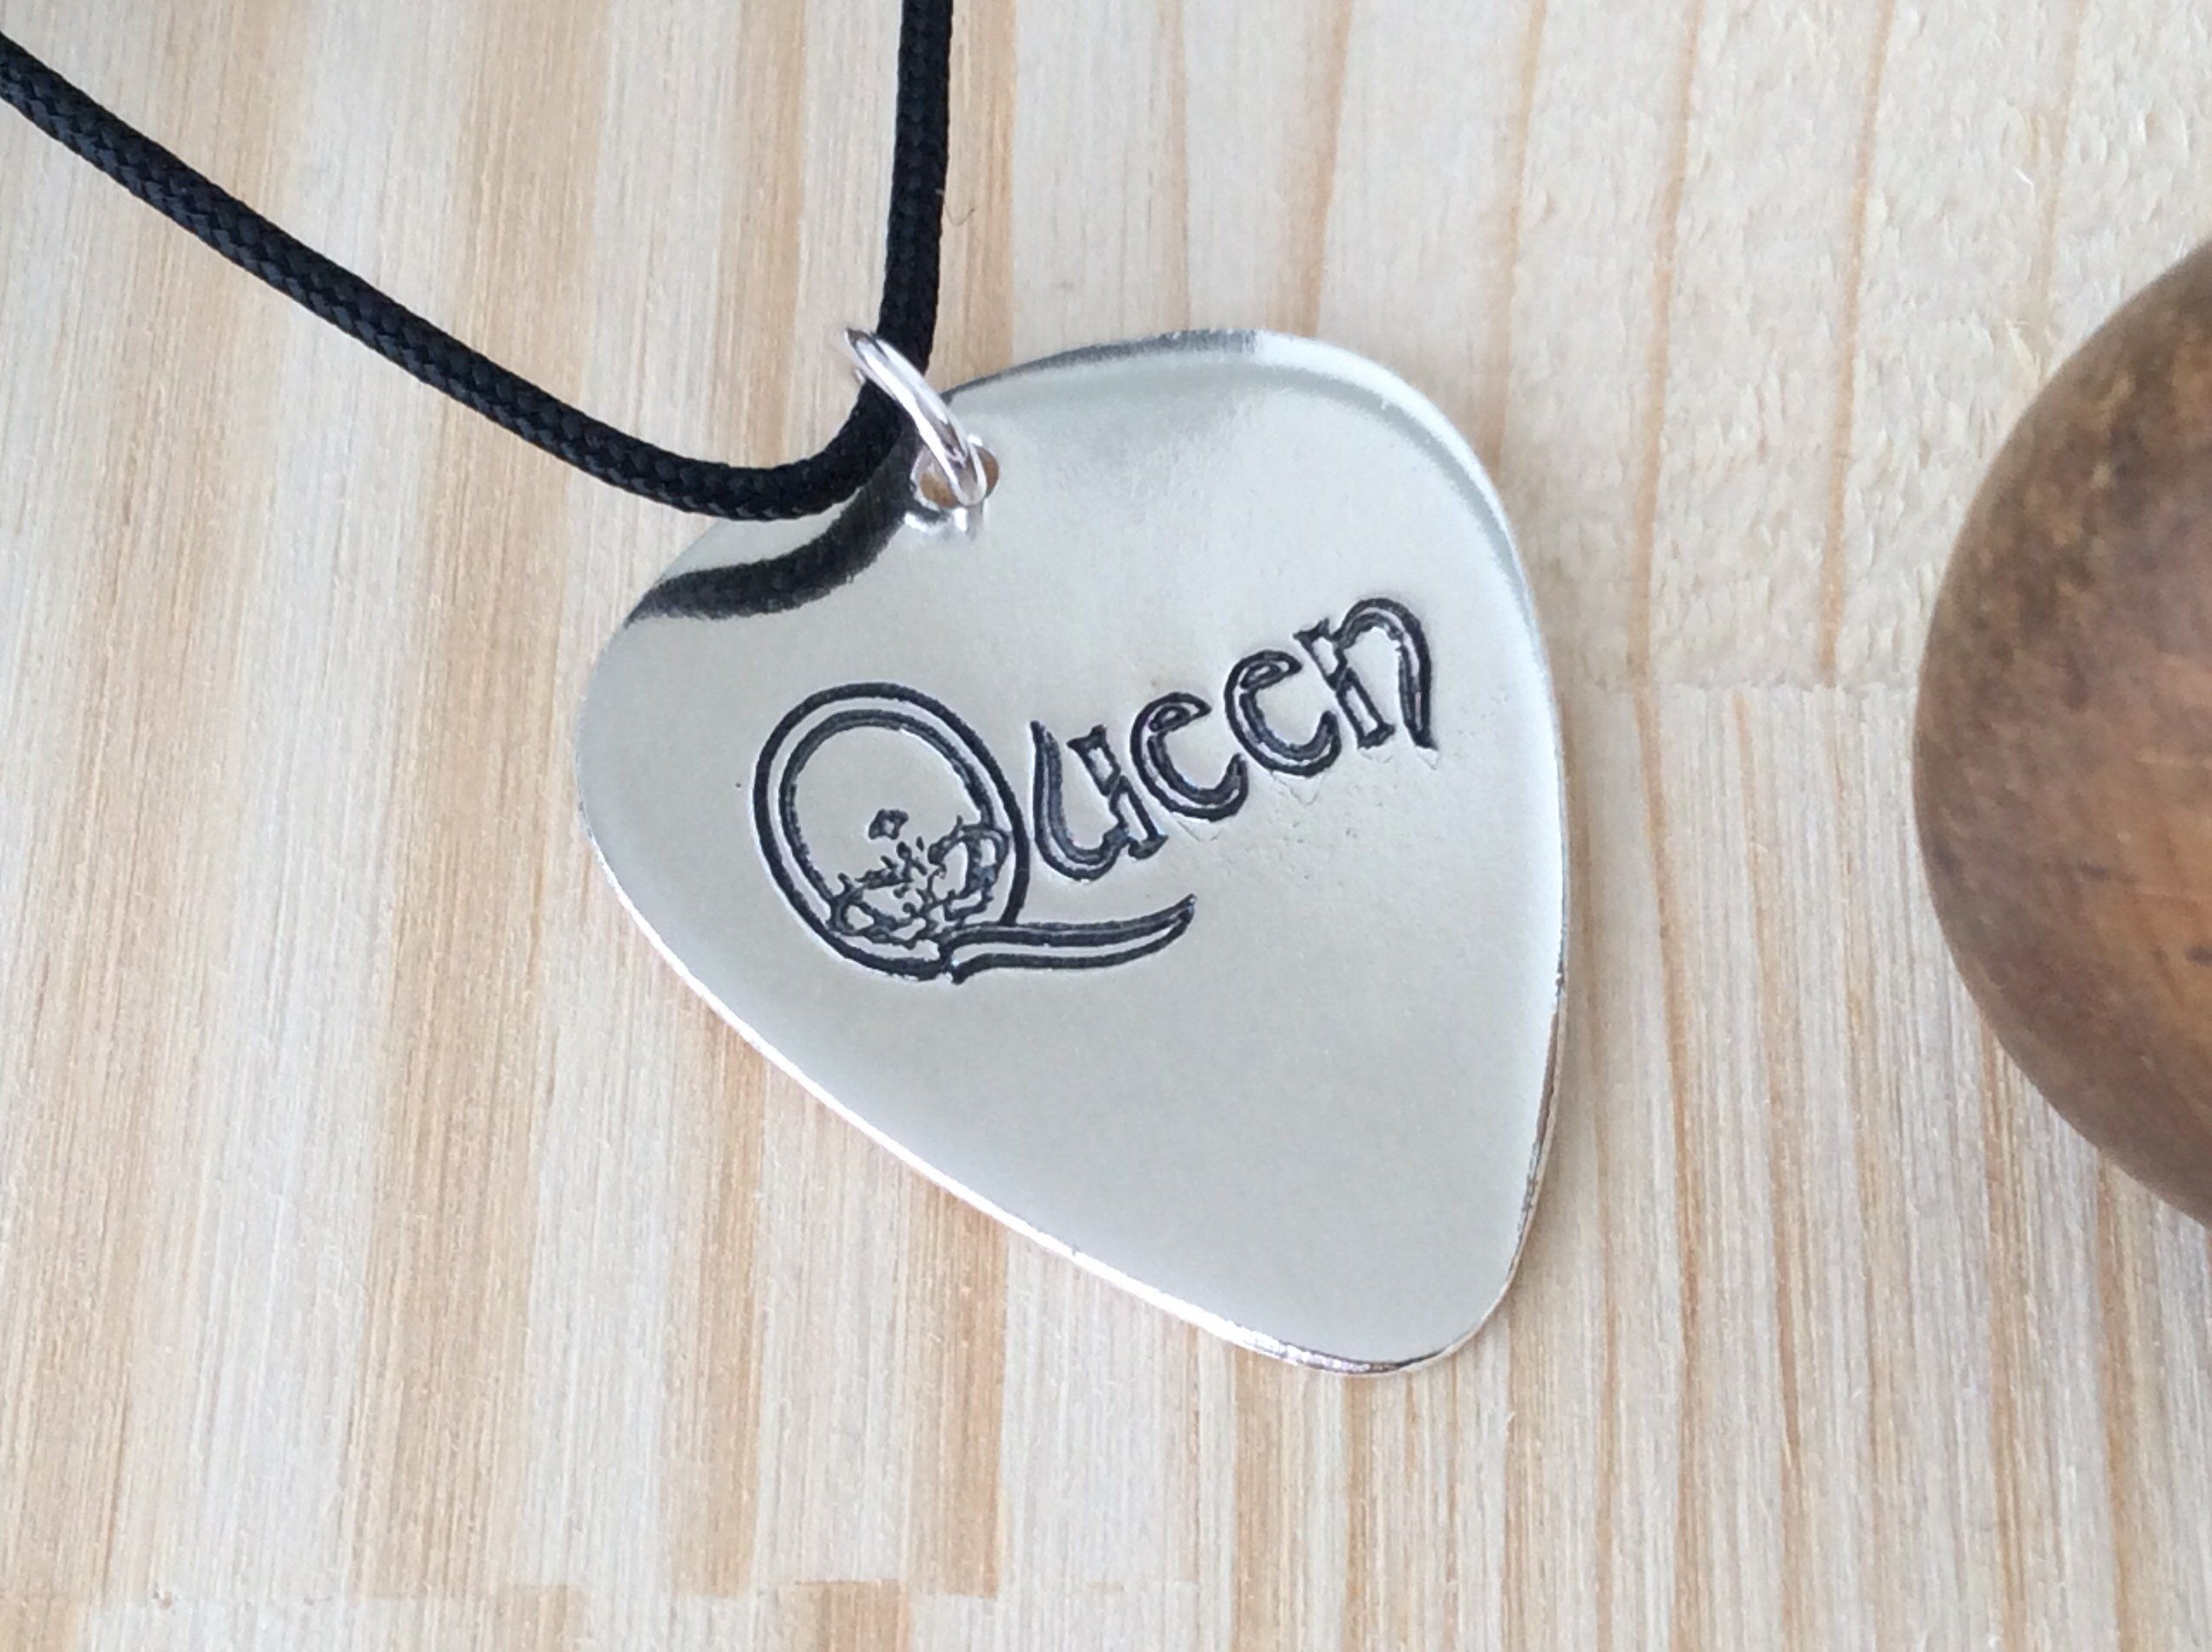 The Queen Guitar player gift,Guitar gifts,Gift for Musician,Music teacher gift,Guitar pick pendant,Custom guitar pick,Guitar pick holder #customguitars